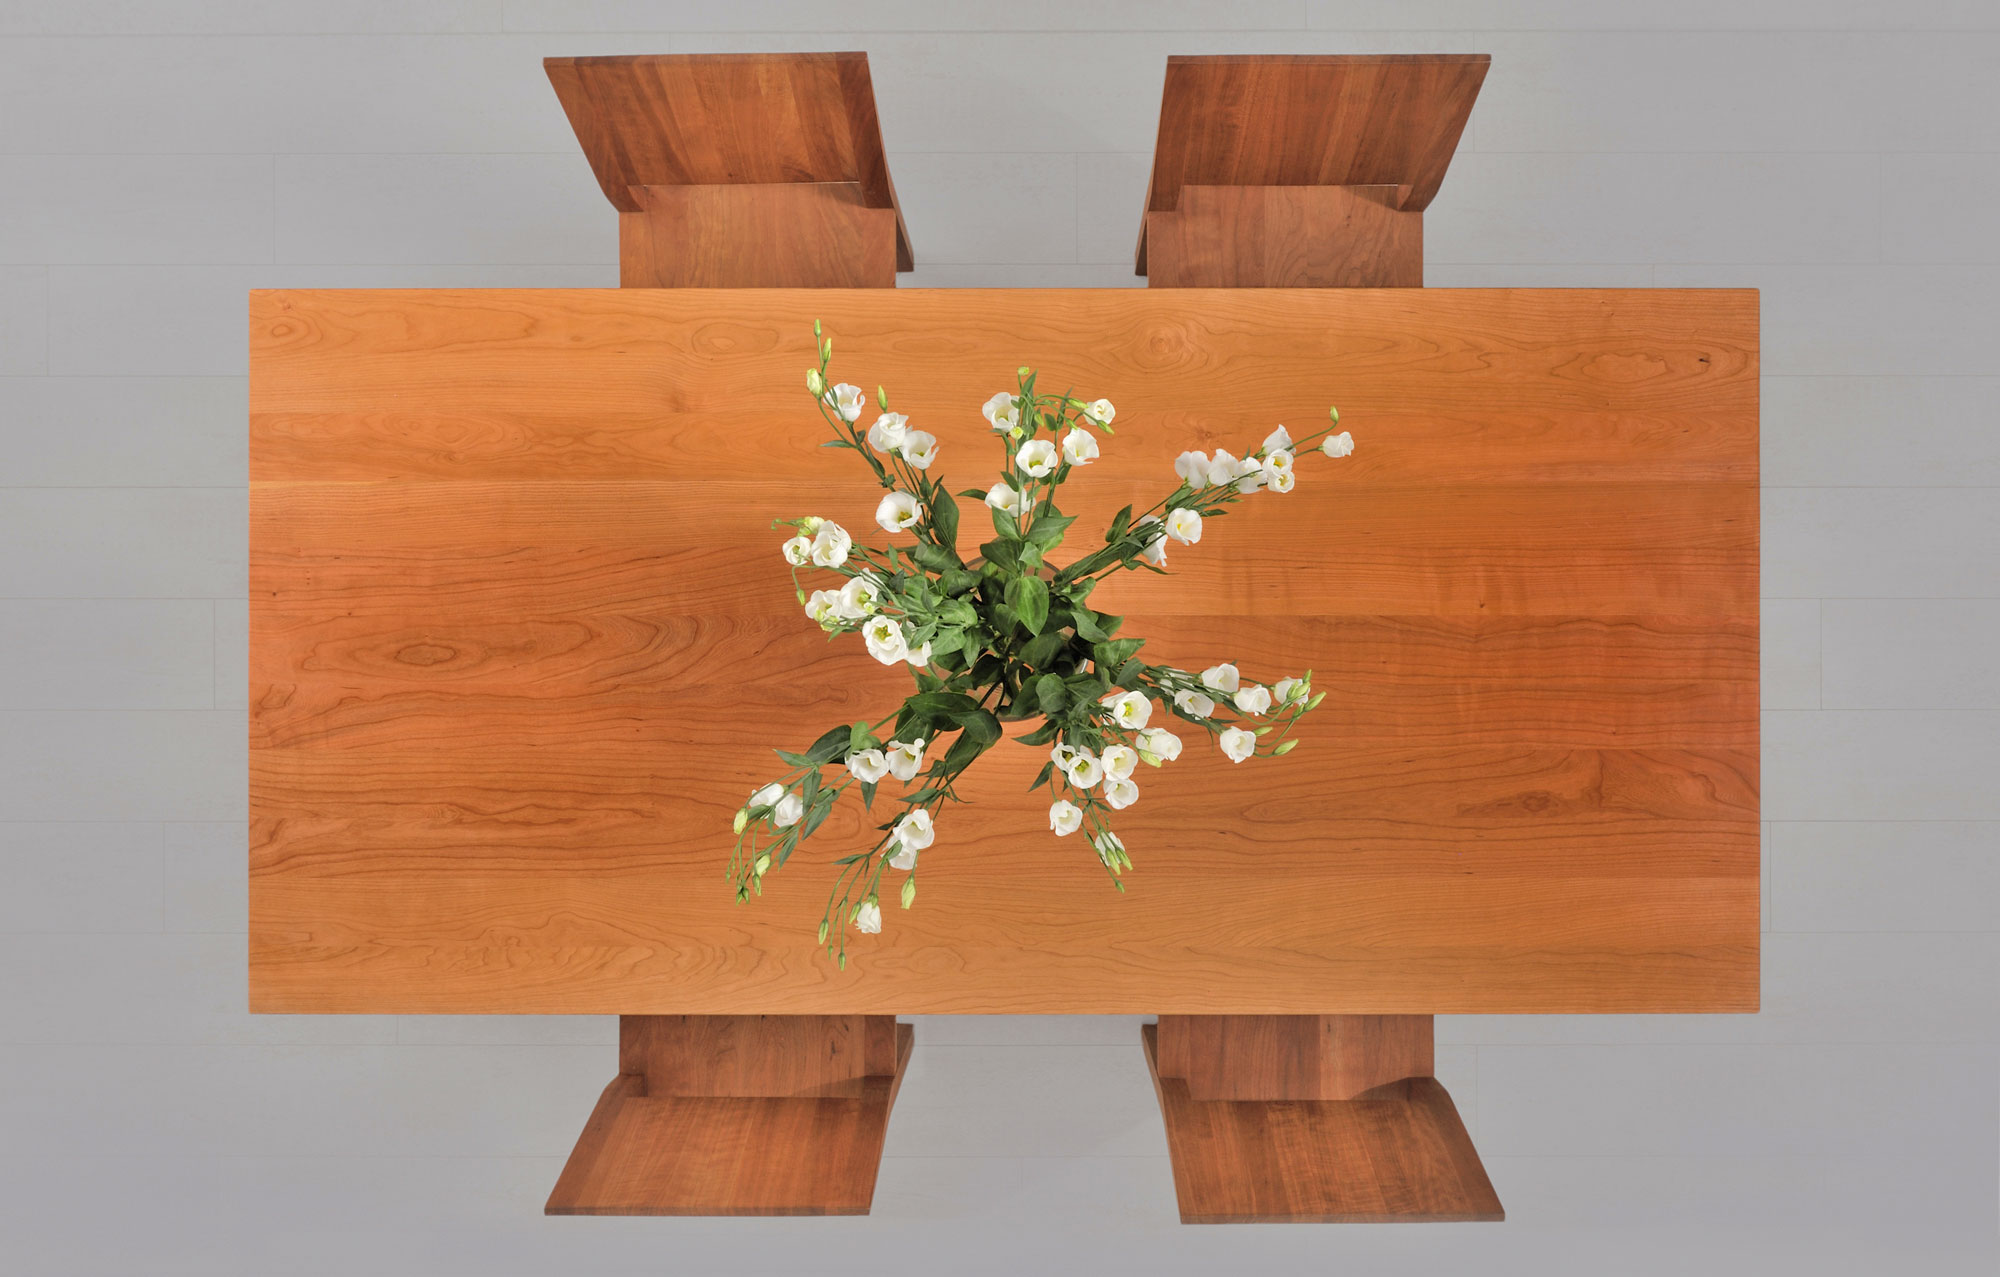 Tailor-Made Wood Table FORTE 3 B9X9 2239 custom made in solid wood by vitamin design